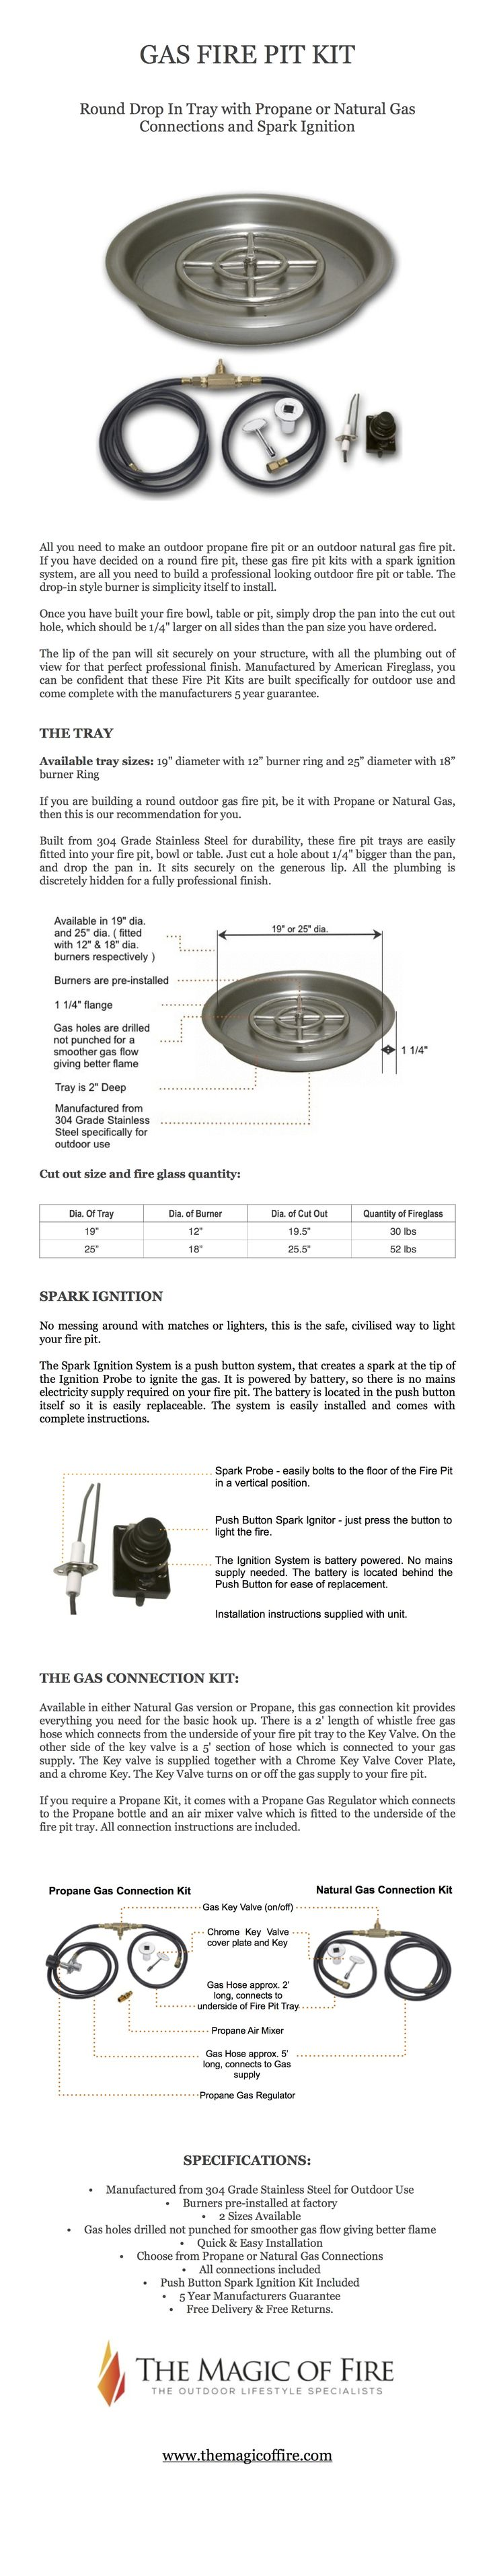 Gas Fire Pit Kit - Round Drop In Tray with Gas Connections and Spark Ignition